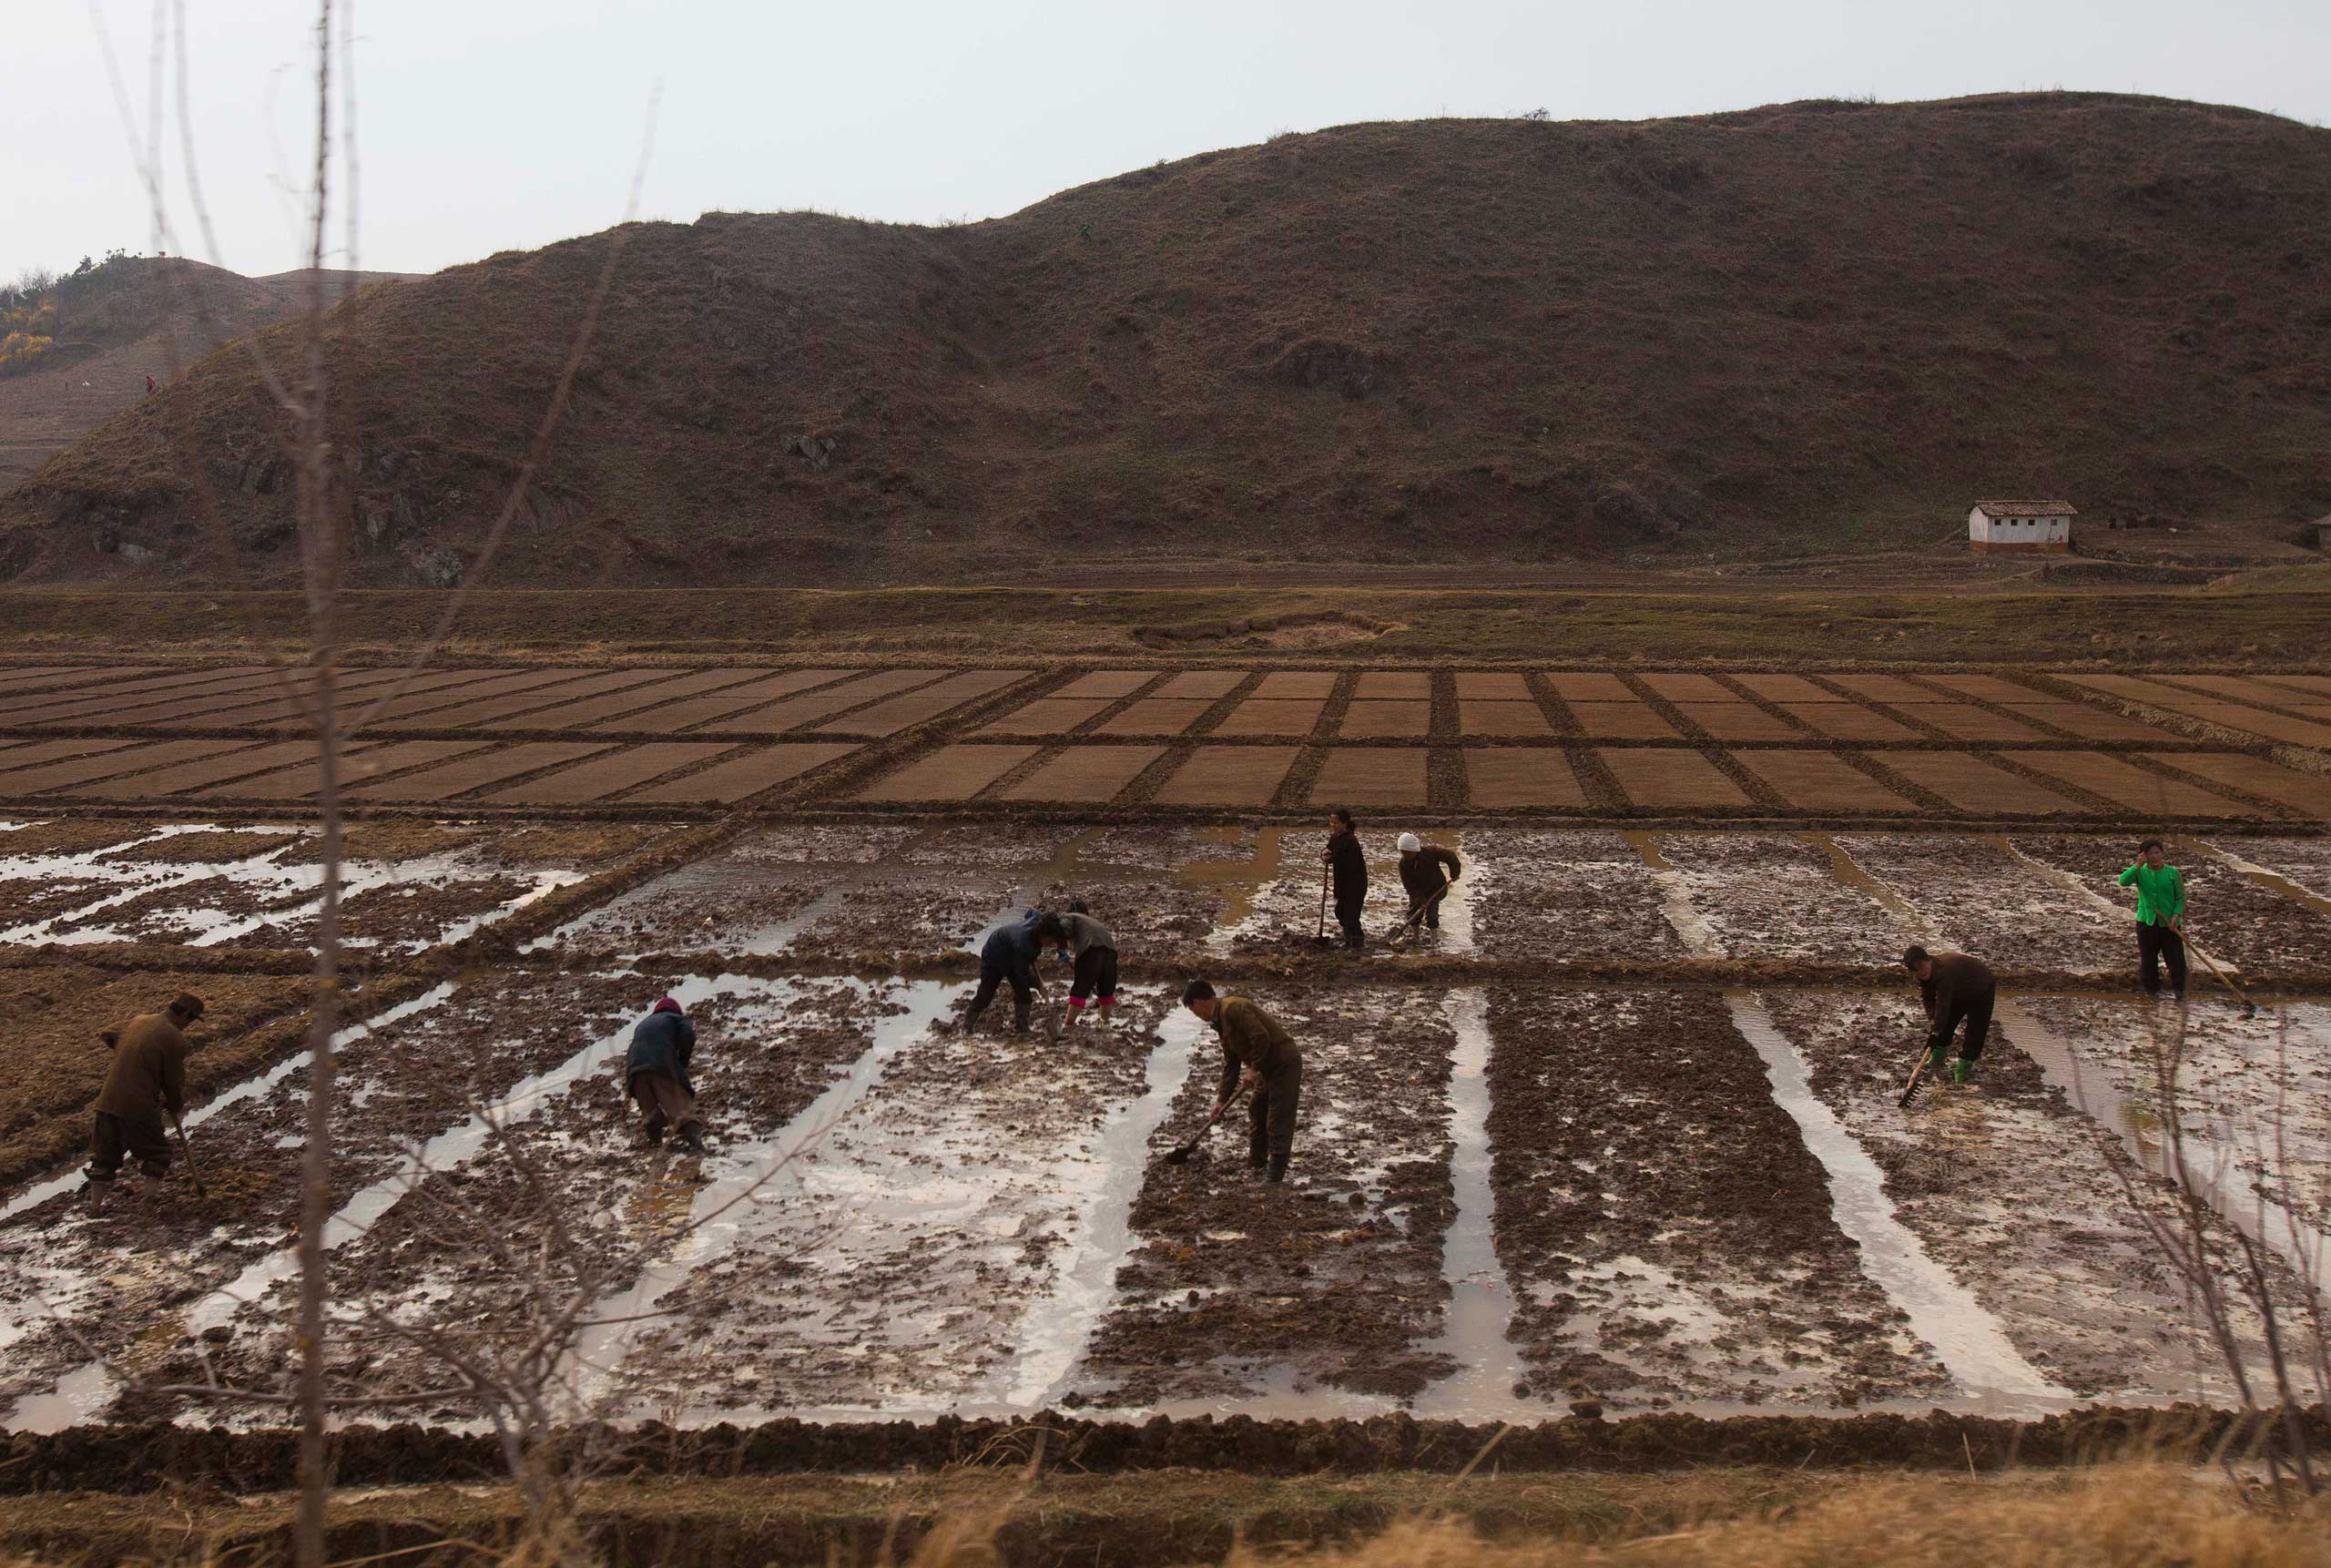 April 17, 2011. People work in a field outside of Kaesong, North Korea.